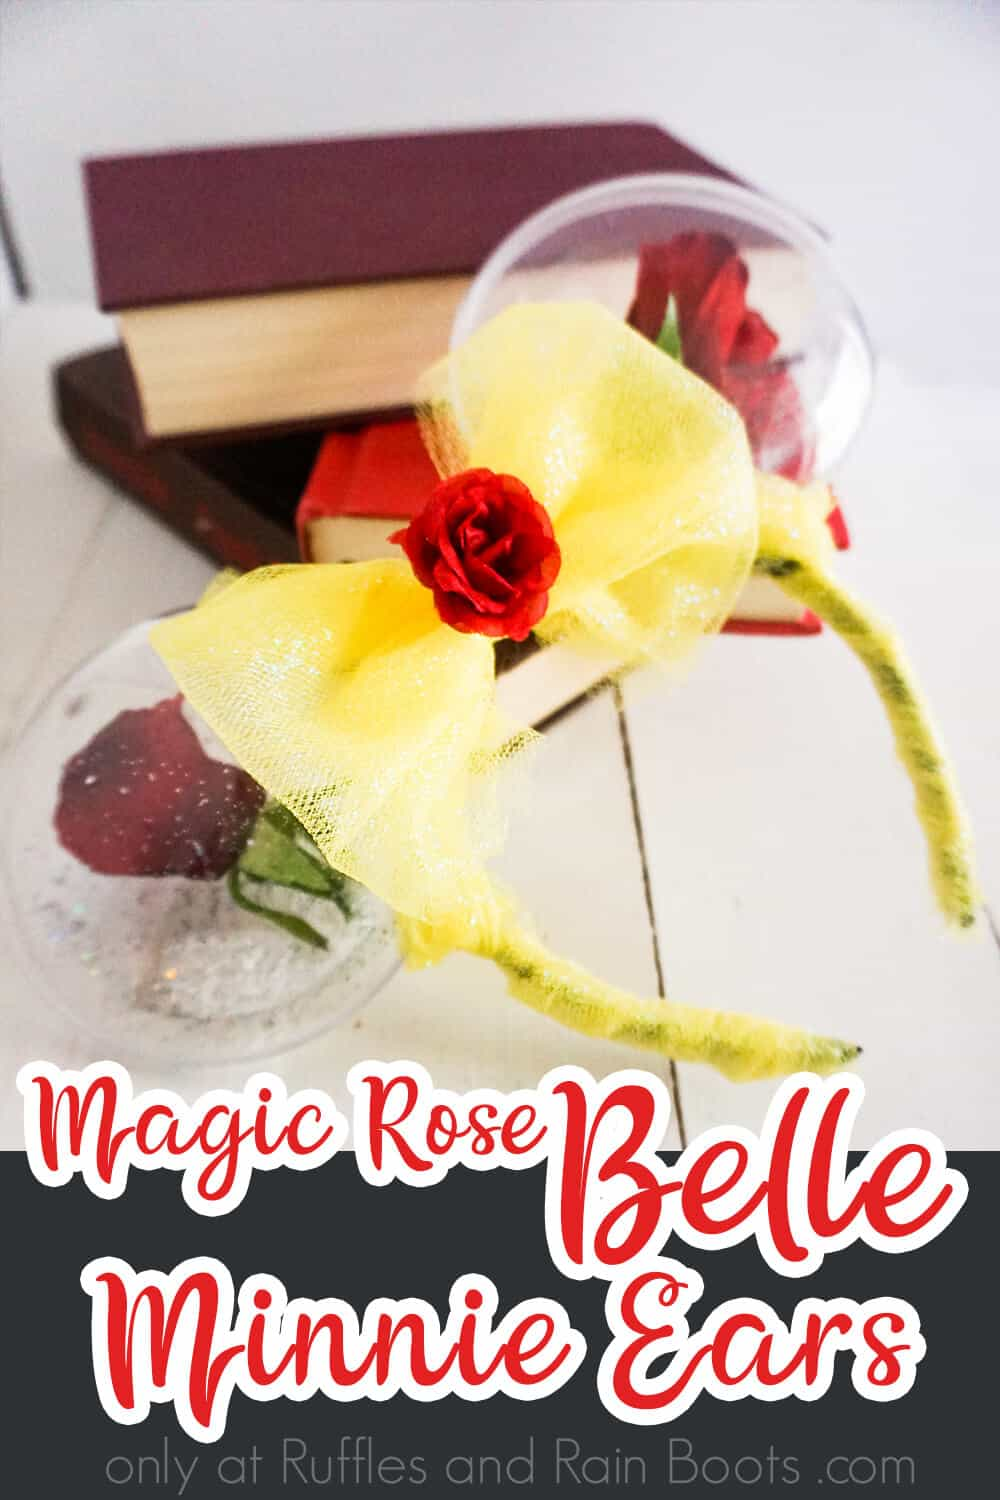 beauty and the beast mickey ears for disney with text which reads magic rose belle mouse ears